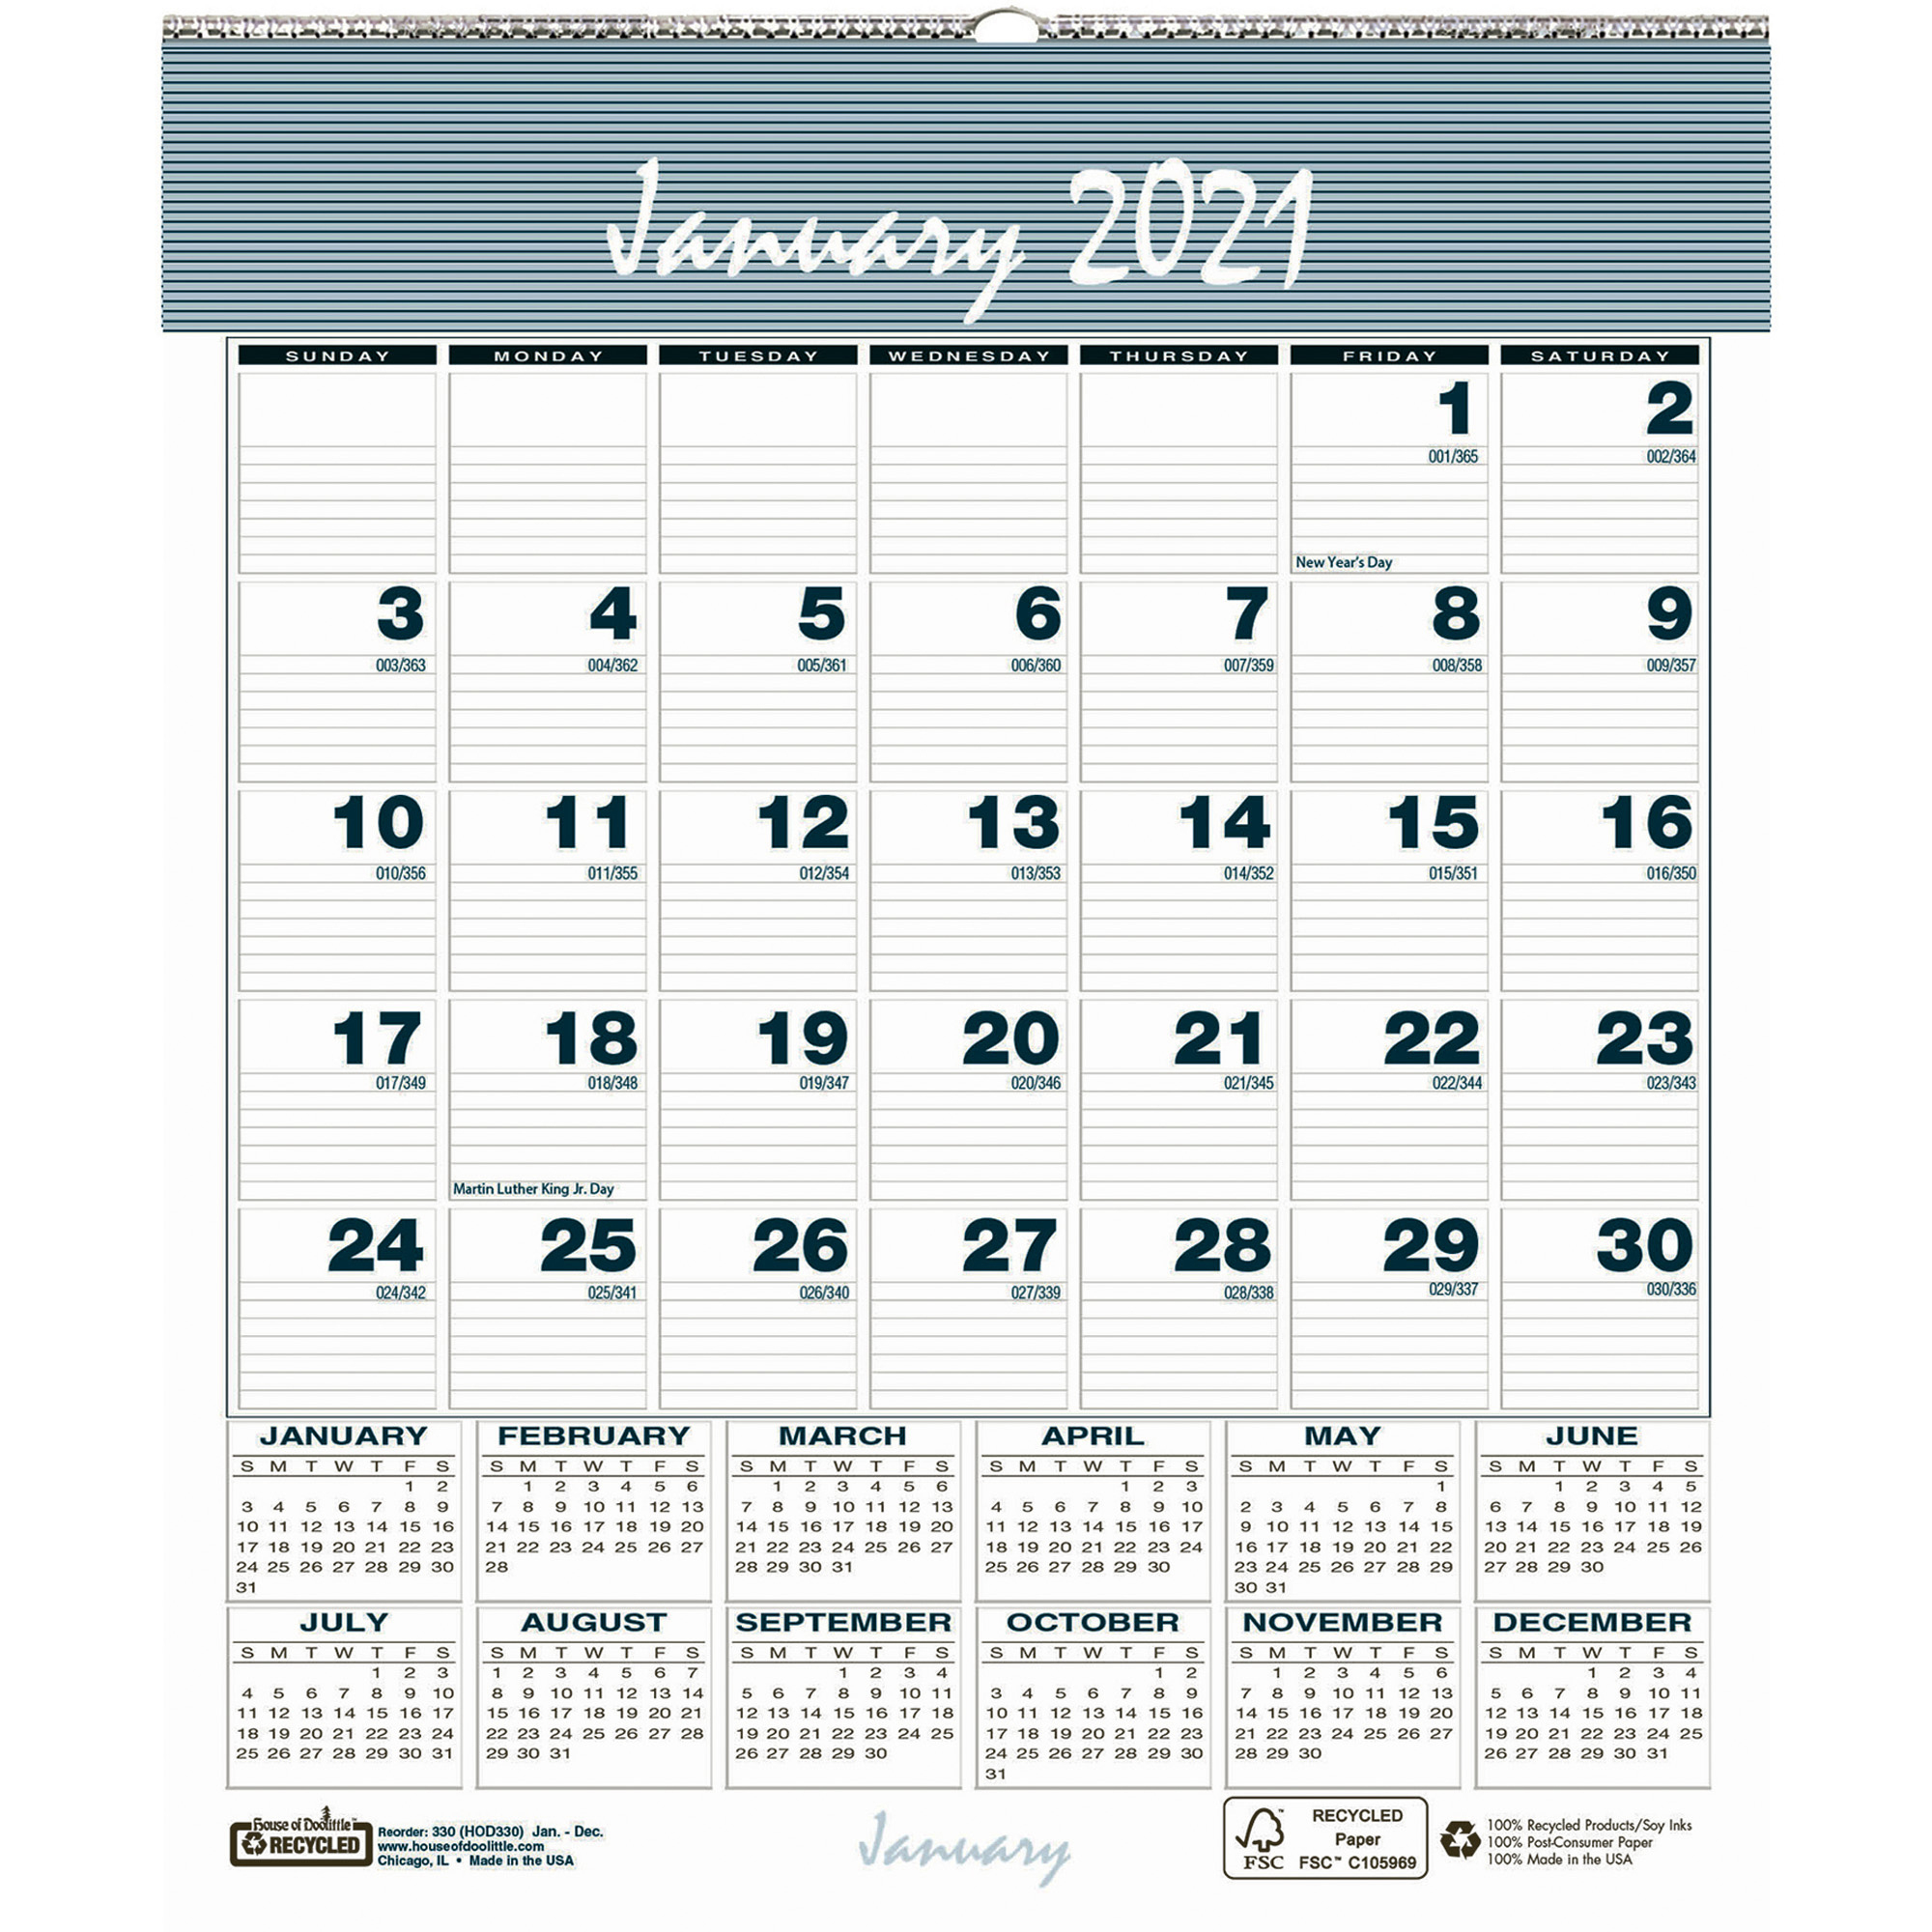 House of Doolittle Bar Harbor Monthly Wall Calendar Julian Dates Monthly 1 Year January 2021 till December 2021 1 Month Single Page Layout HOD330x